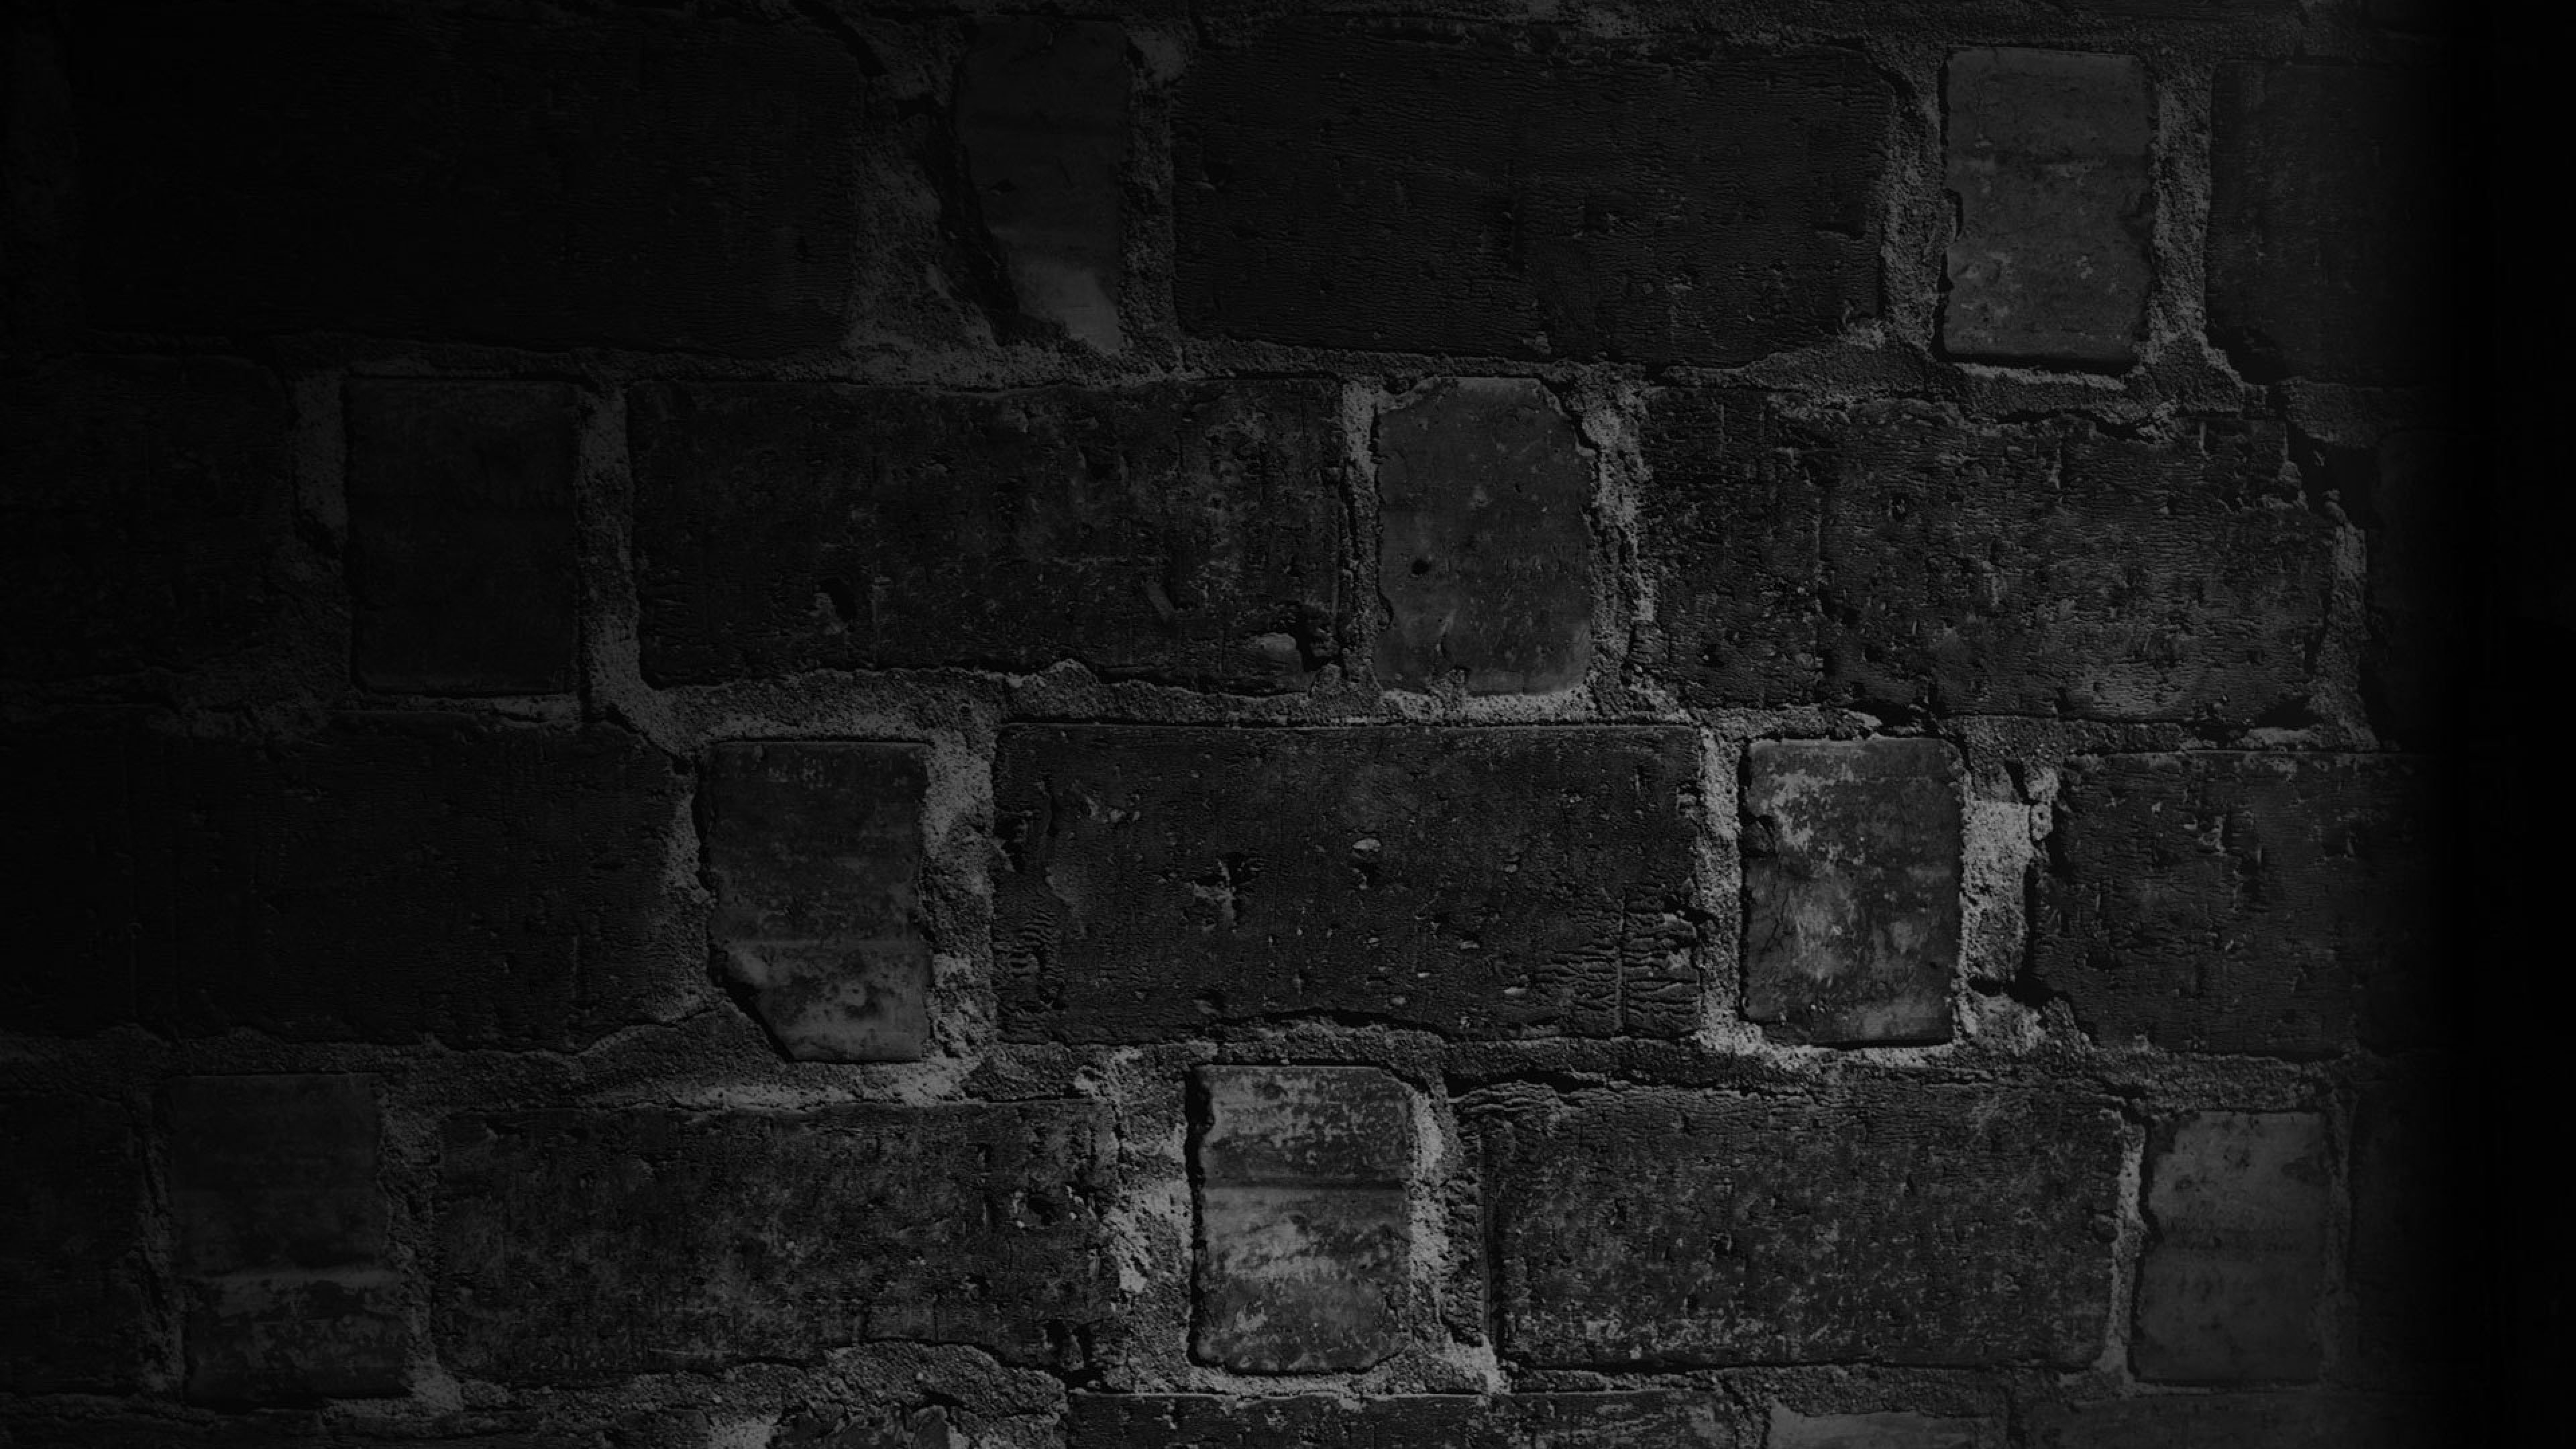 HD Background Black Wall Brick Texture Wallpaper WallpapersByte 3840x2160